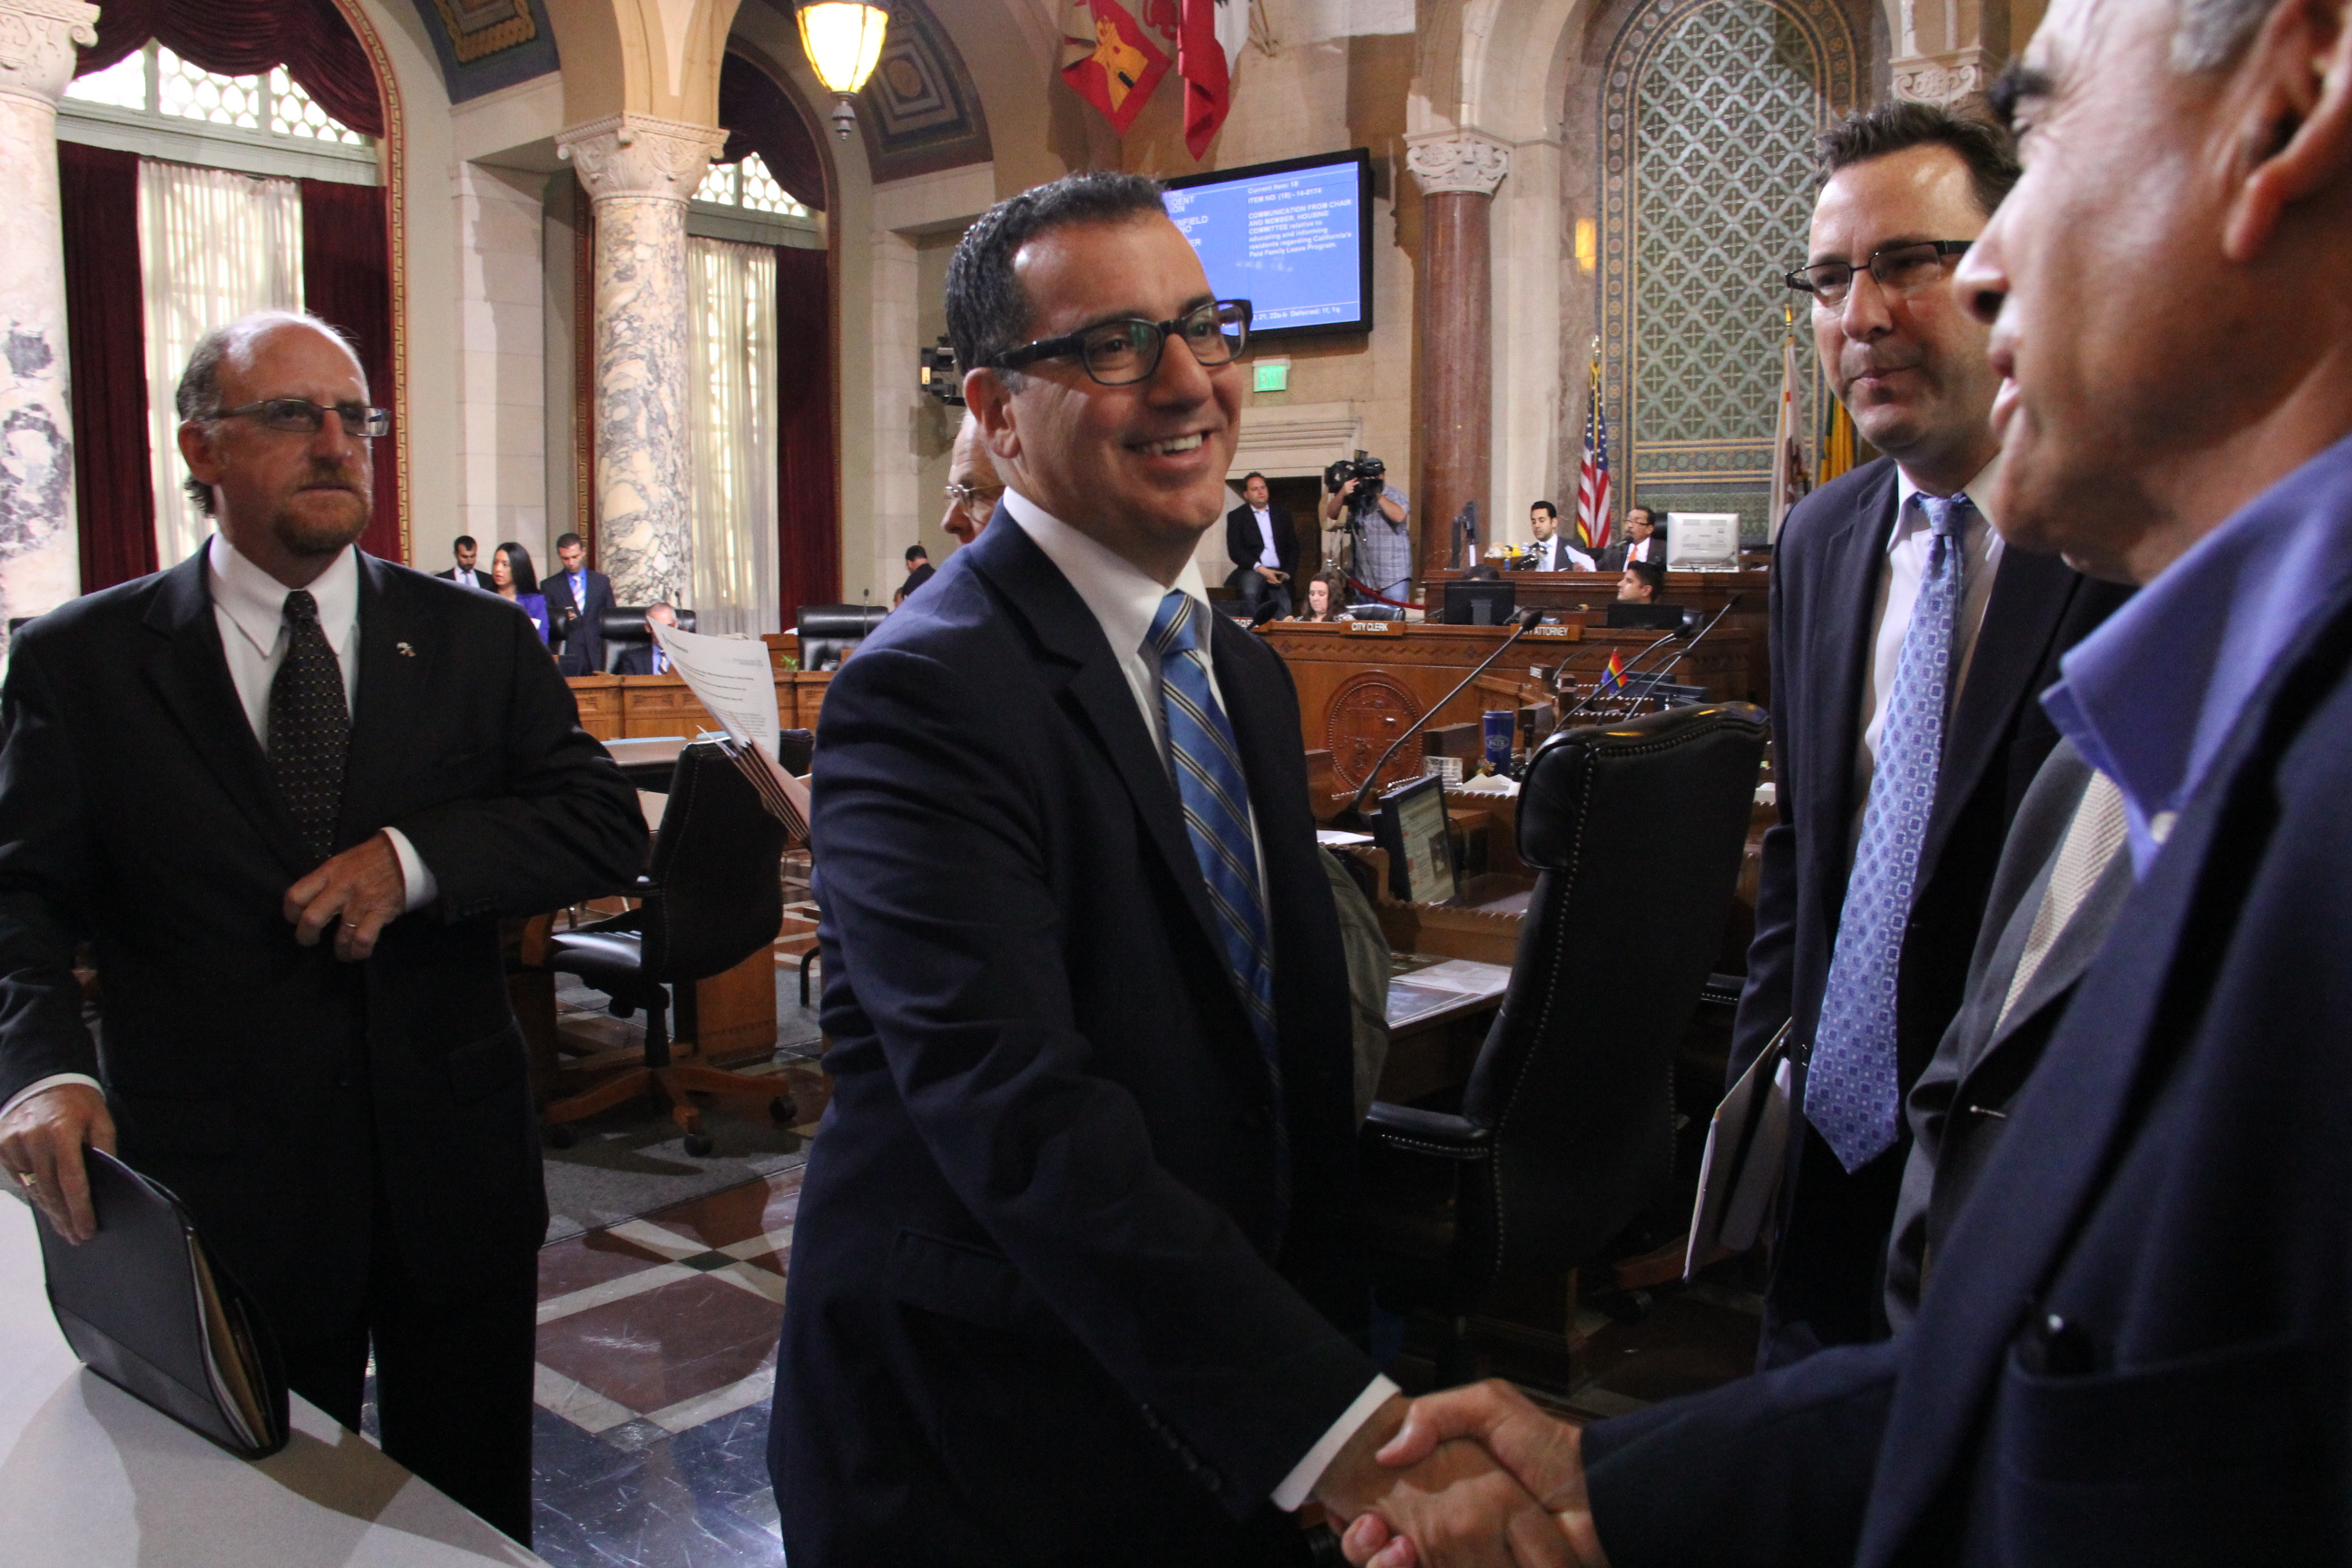 Councilmember Blumenfield shakes hands with Jacob Segal of the Southern California Israel Chamber of Commerce (SCICC), following the unanimous vote in favor of establishing the Los Angeles/Eilat Innovation and Cooperation Task Force, May 23, 2014.